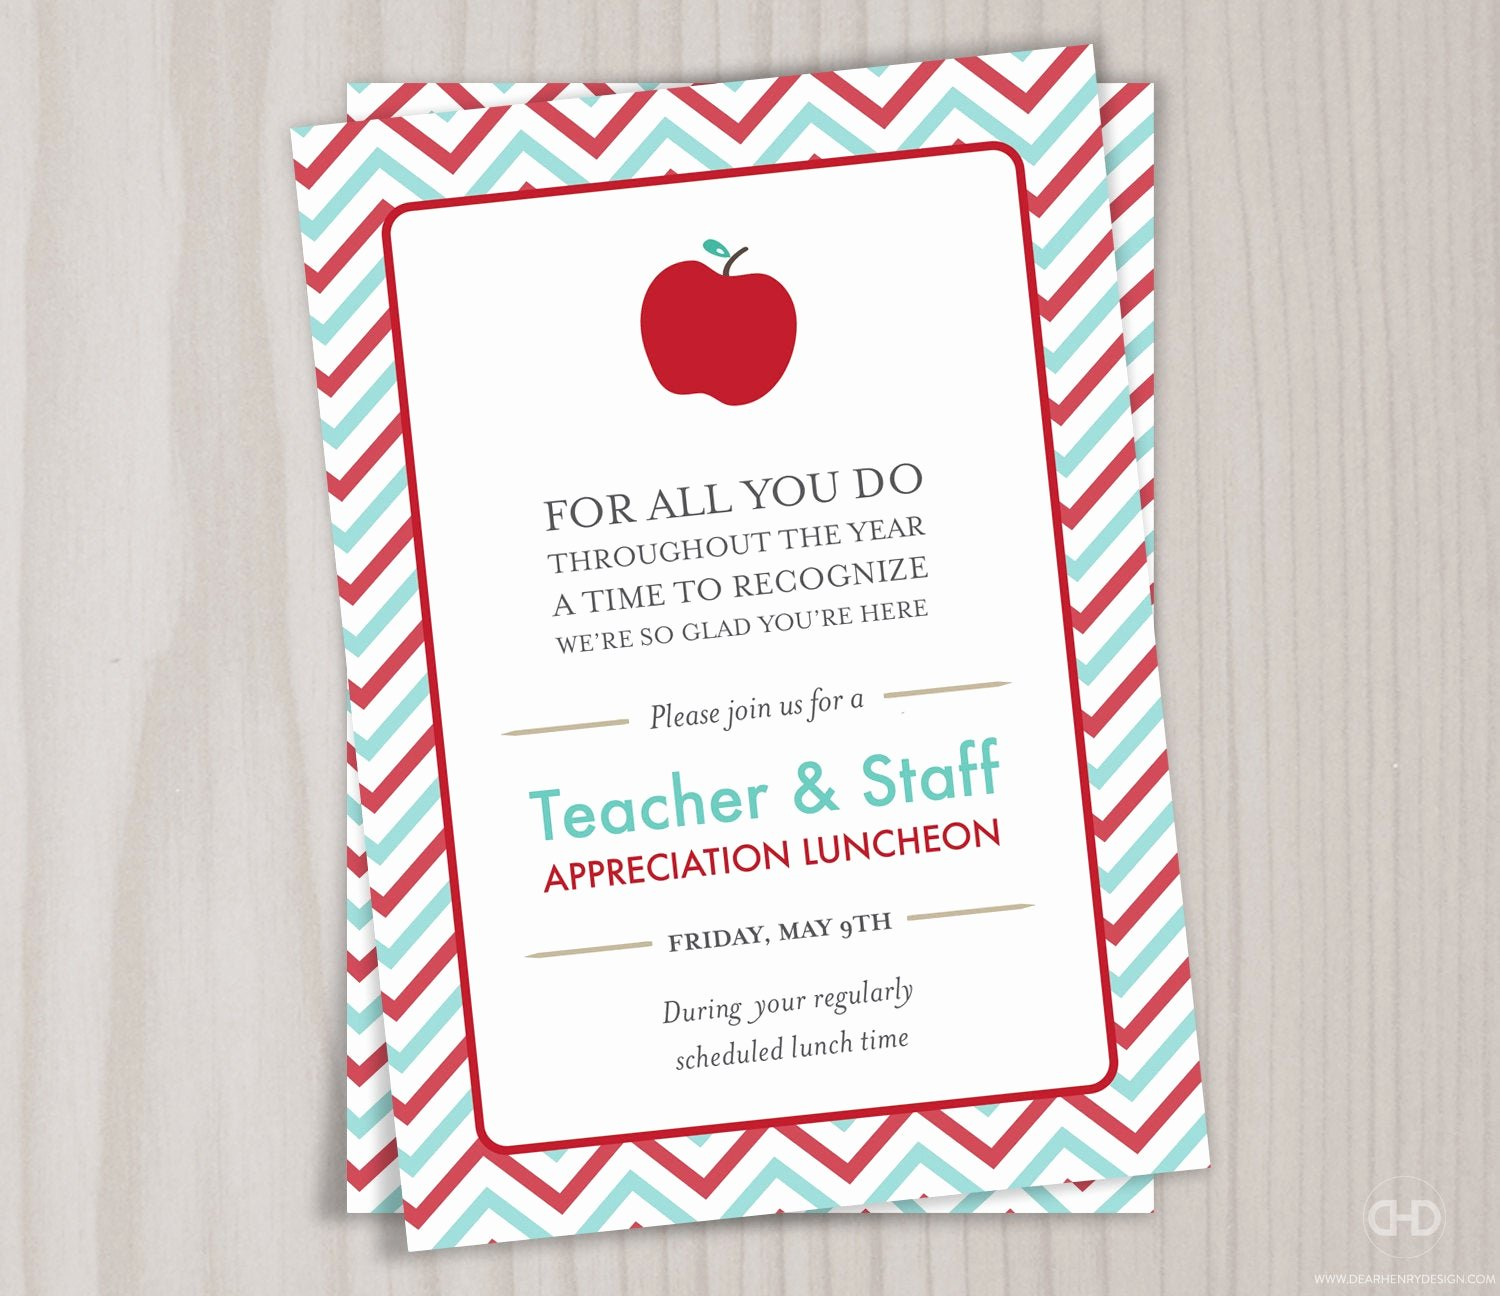 Thank You Lunch Invitation Awesome Teacher Appreciation Invitation Printable Teacher Thank You